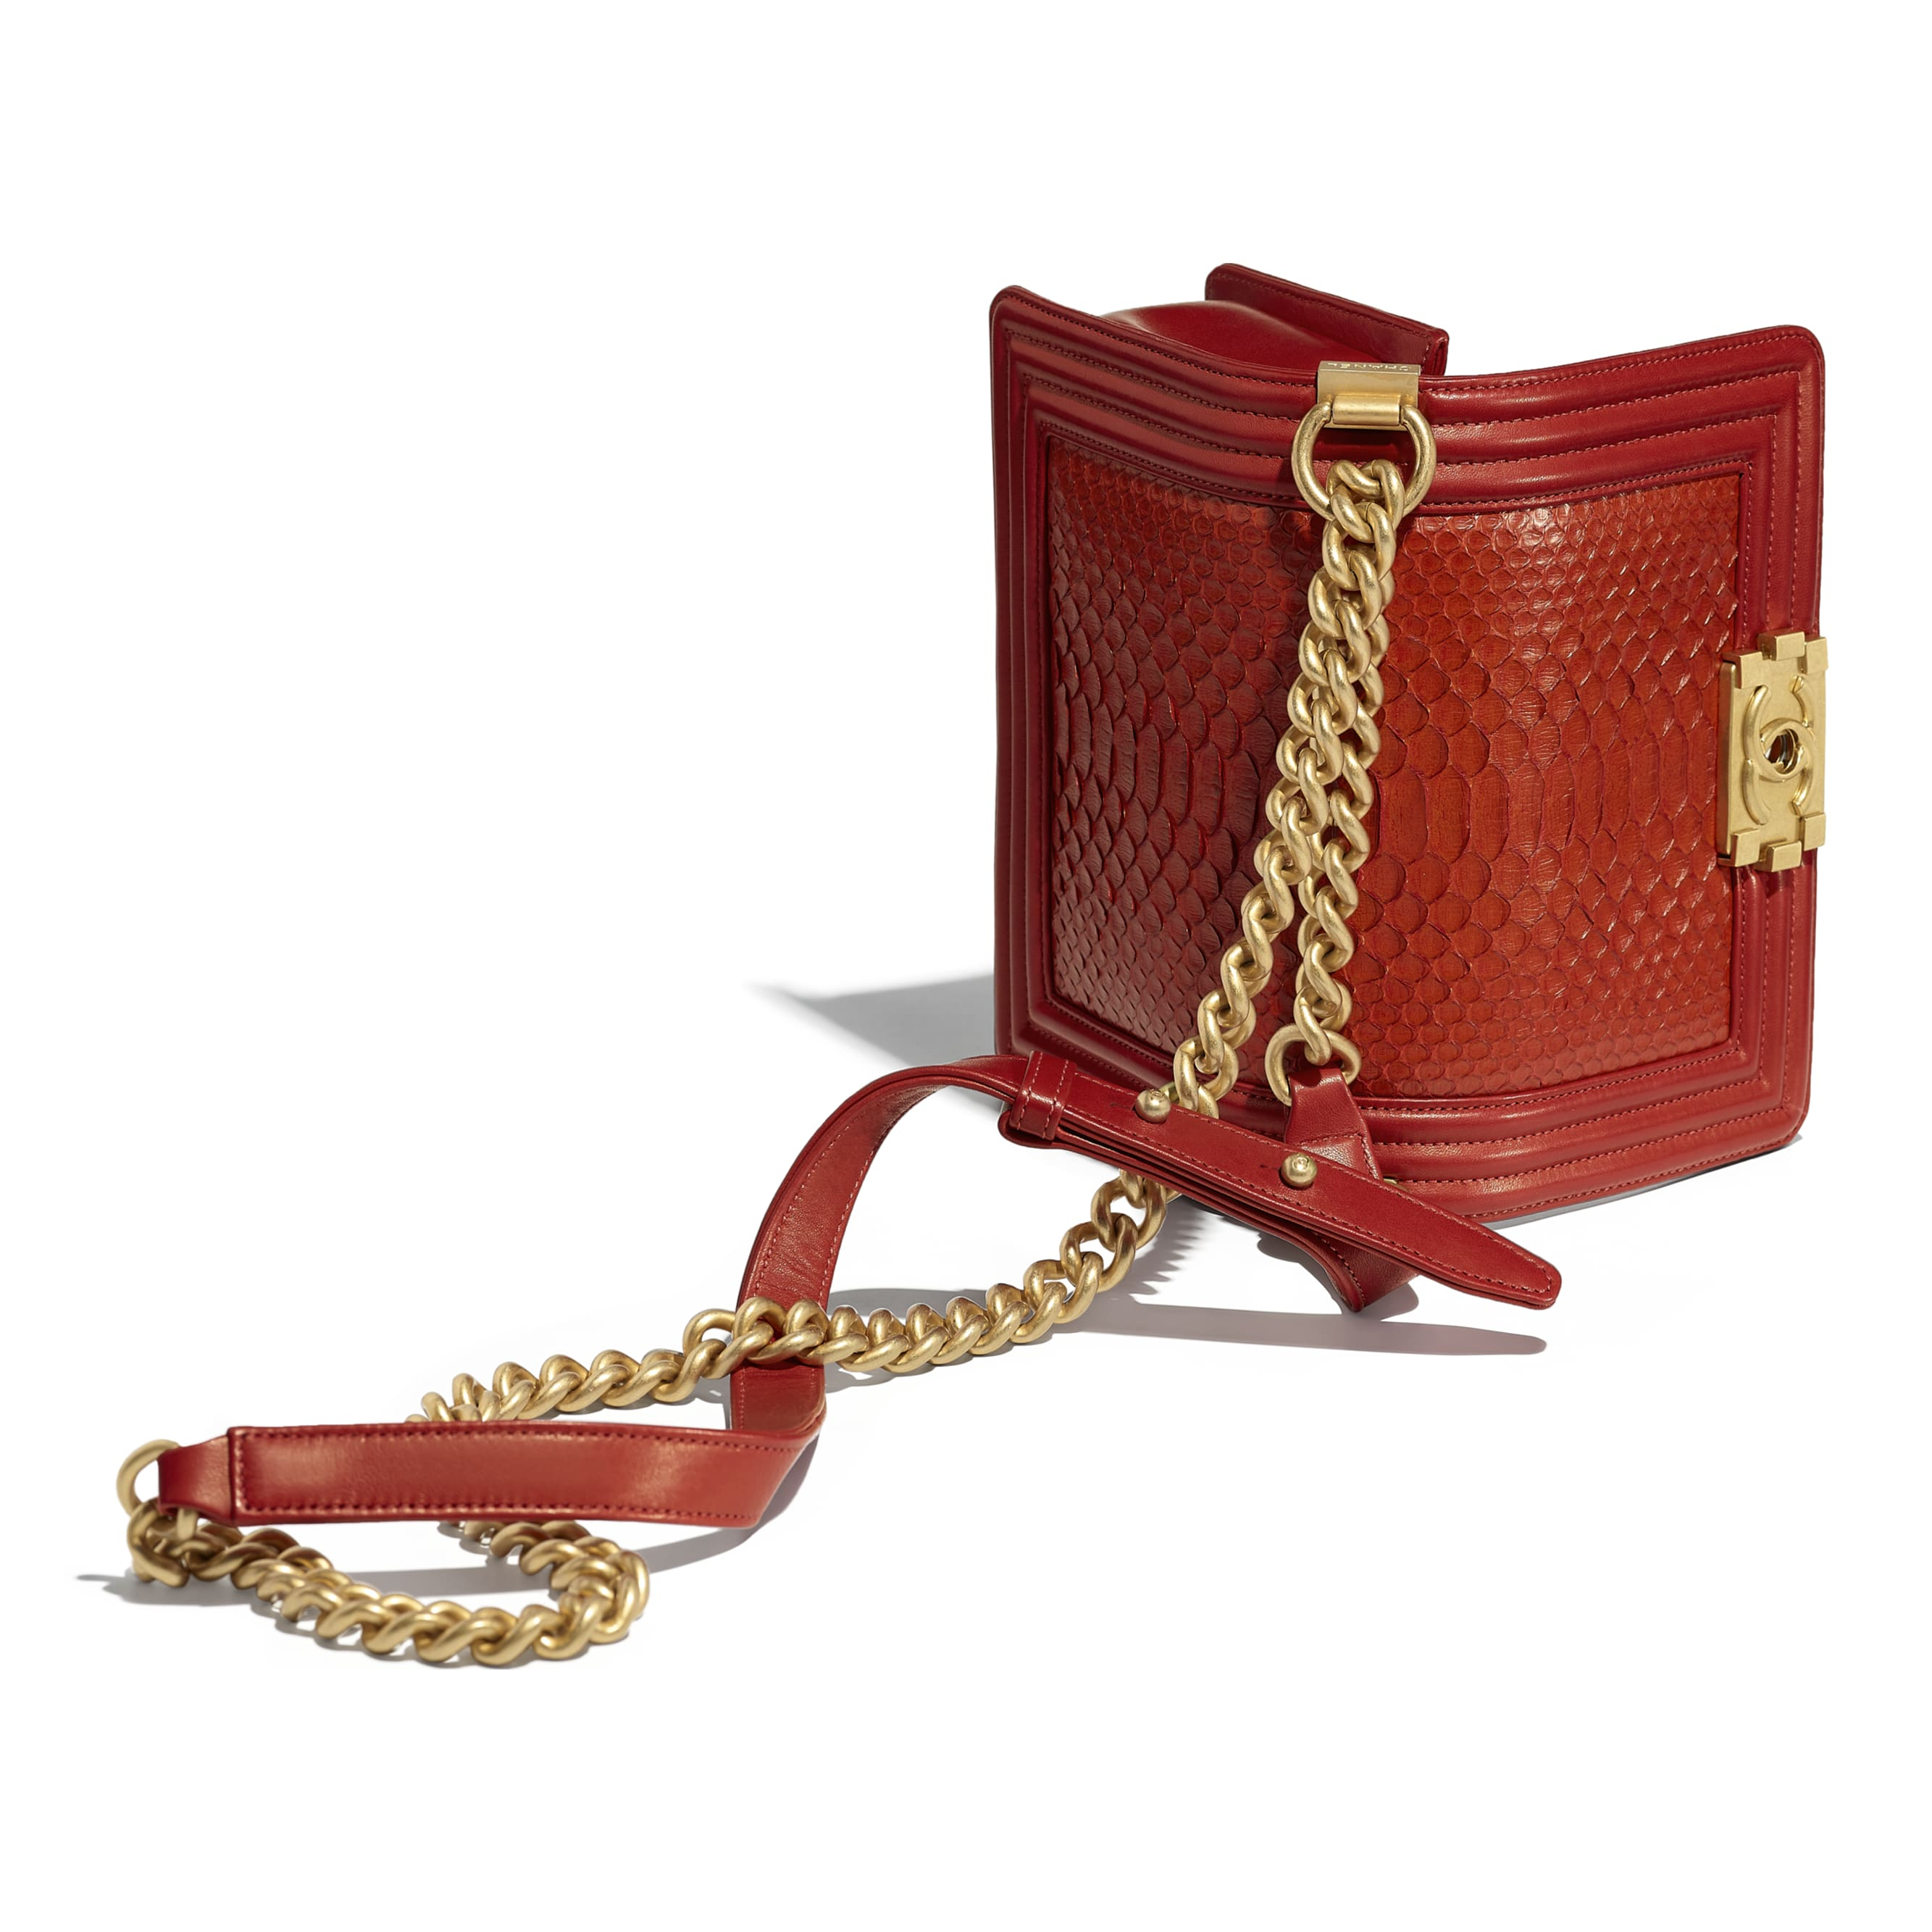 Small BOY CHANEL Handbag - Red - Python, Calfskin & Gold-Tone Metal - Other view - see standard sized version